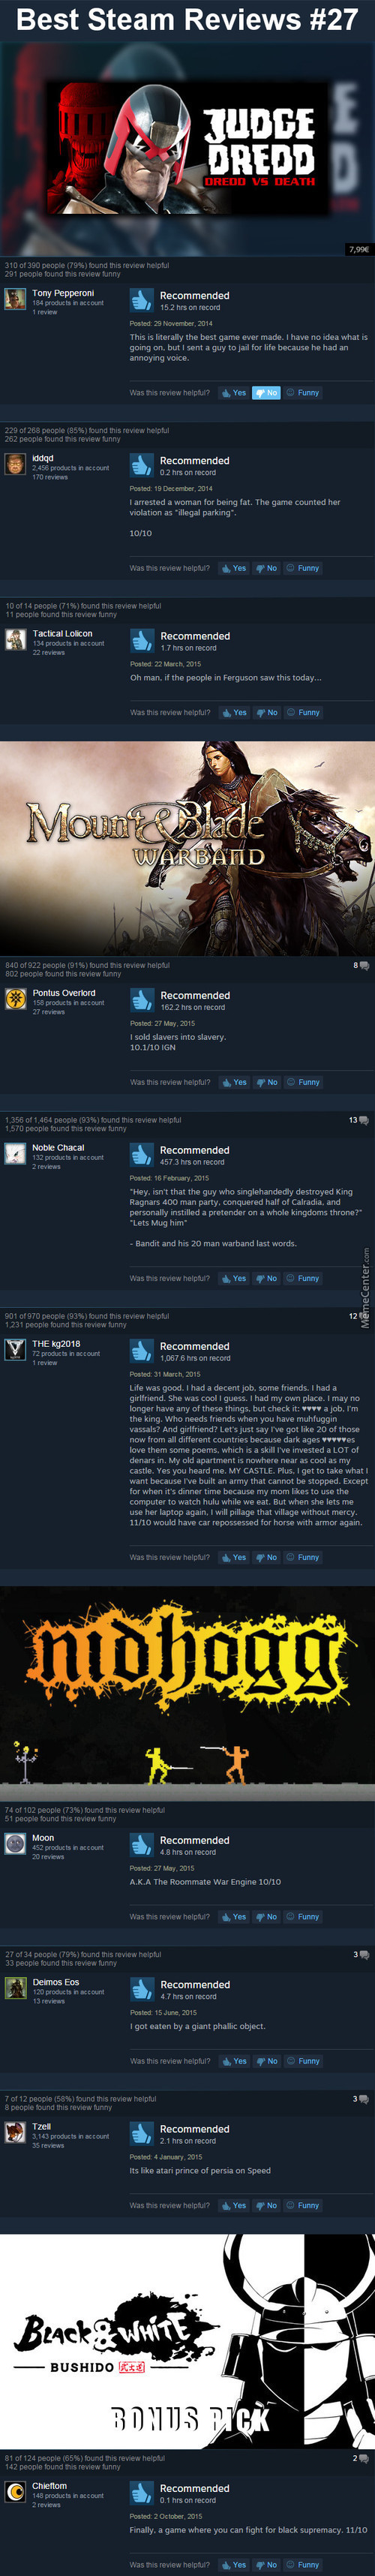 Best Steam Reviews #27 - I Am The Law